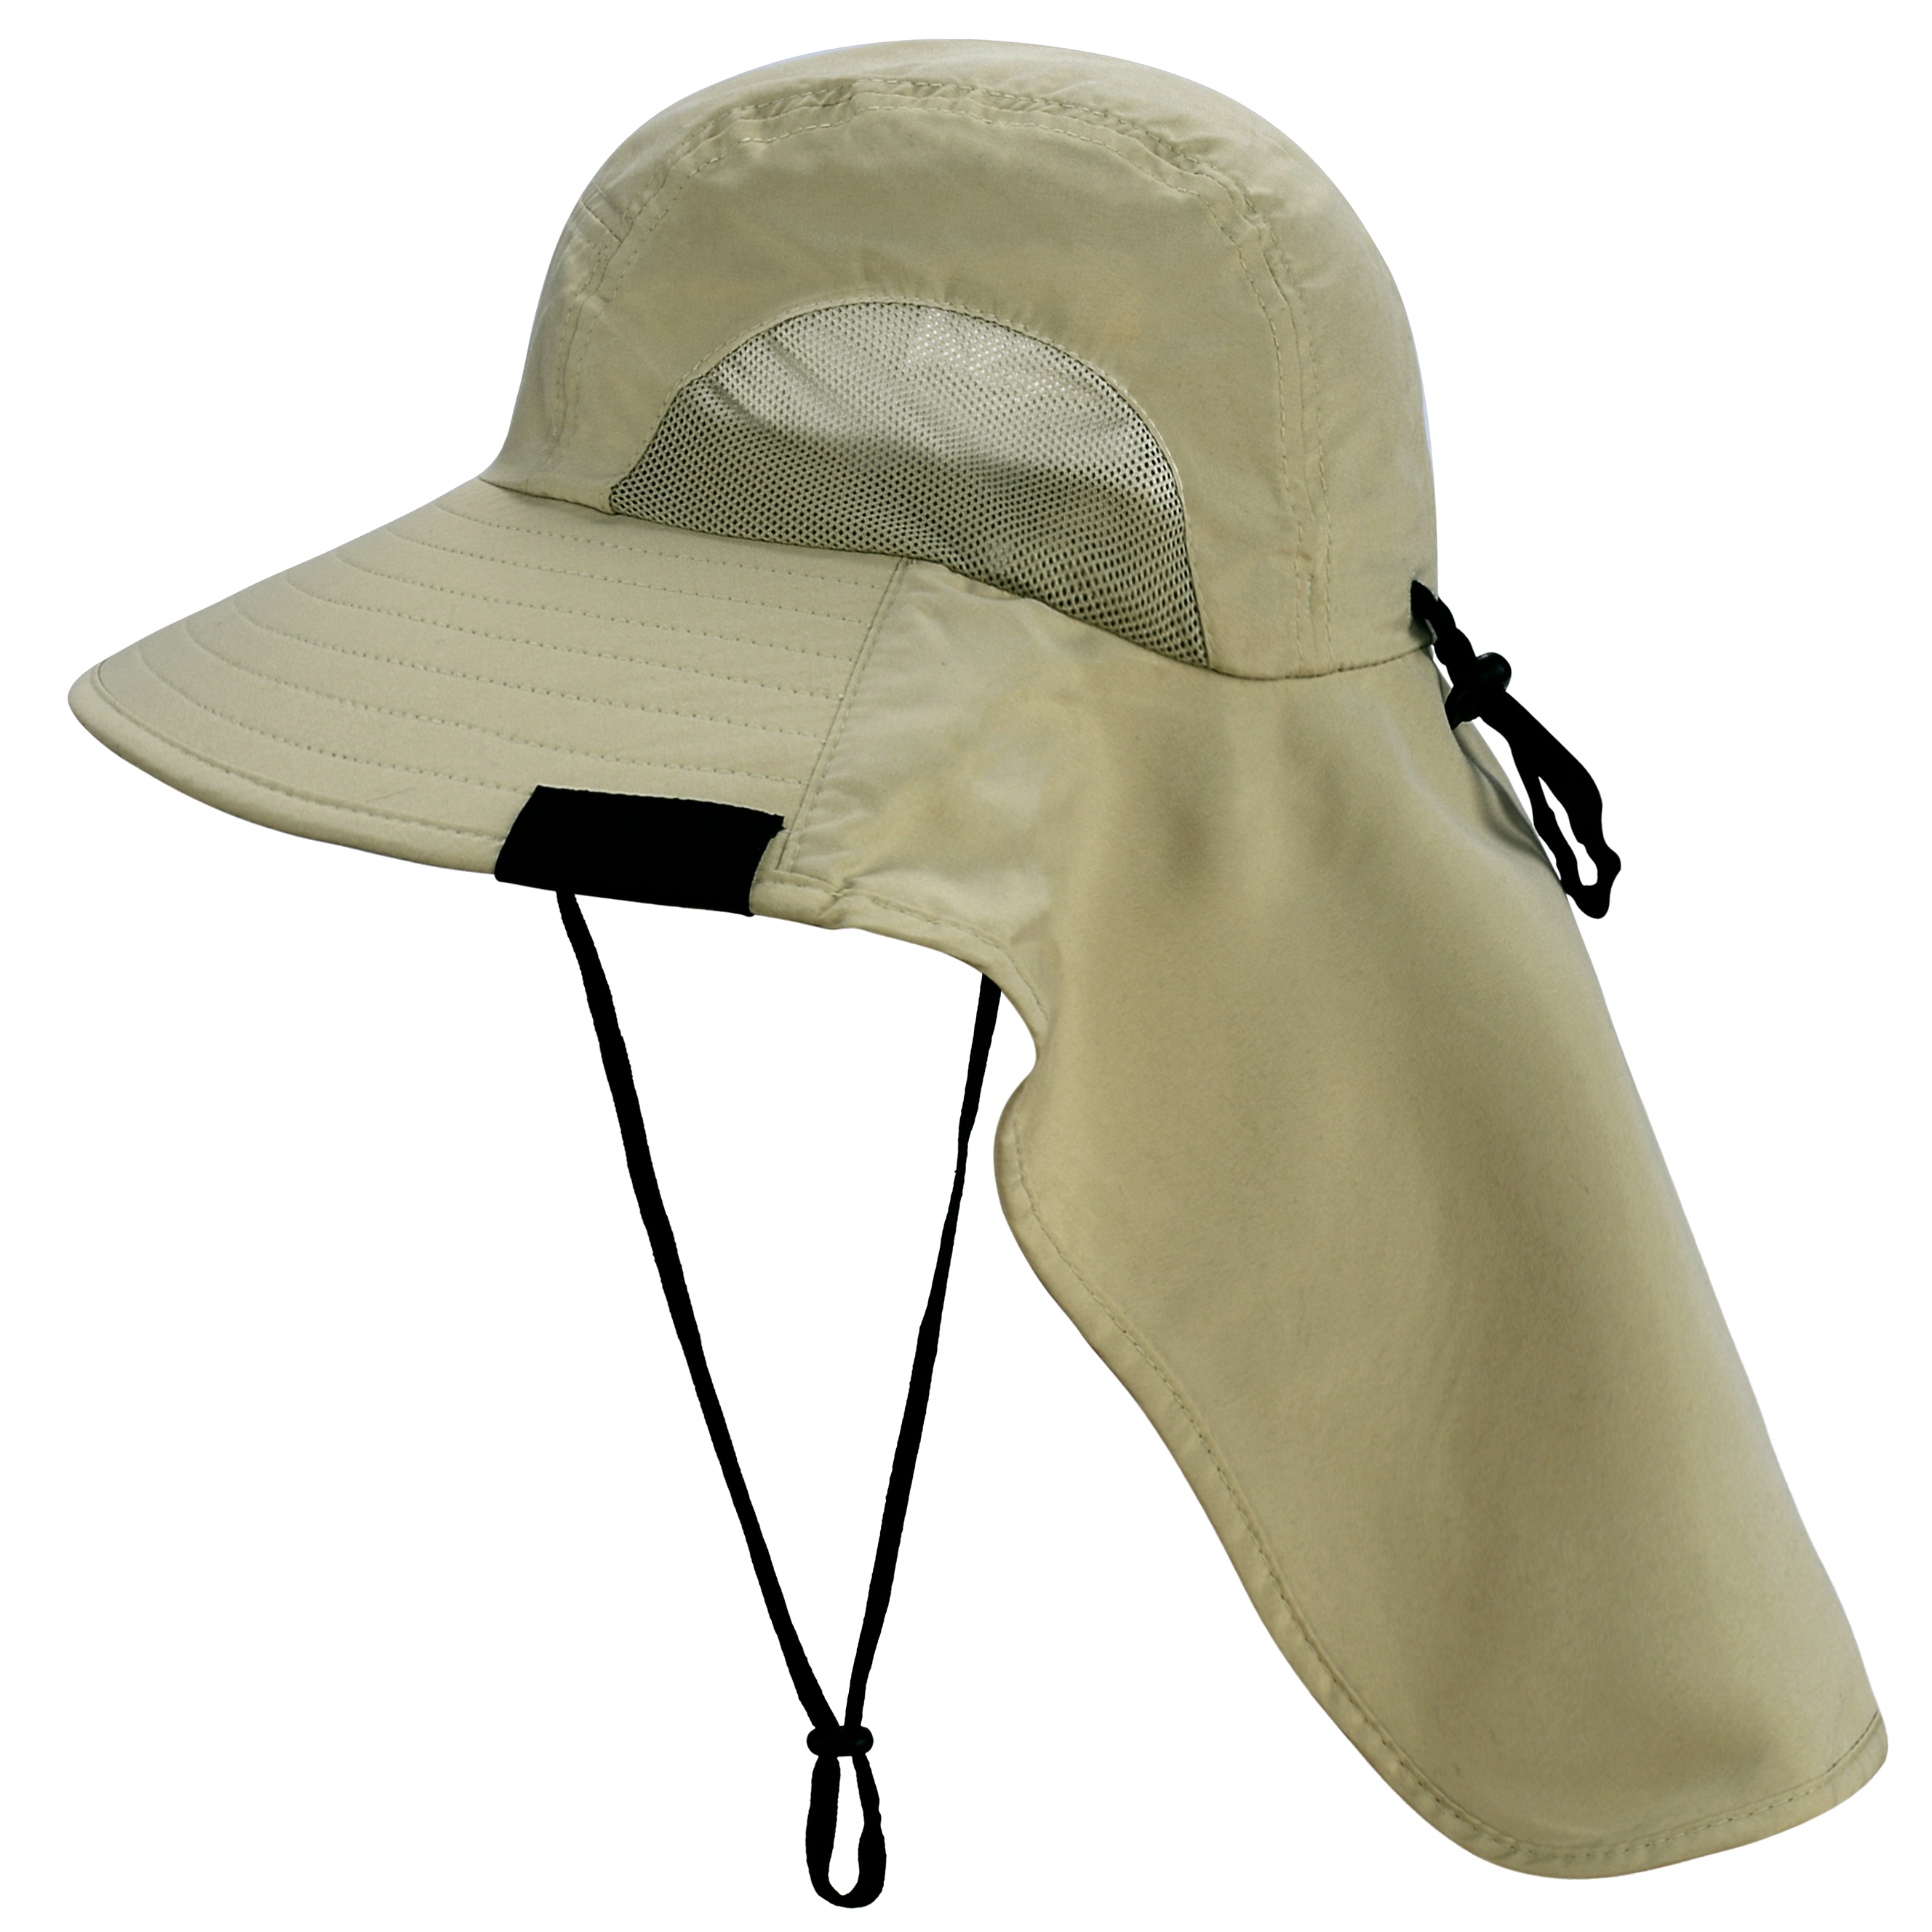 Solaris Outdoor Fishing Hat With Ear Neck Flap Cover Wide Brim Sun  Protection SA for sale online | eBay